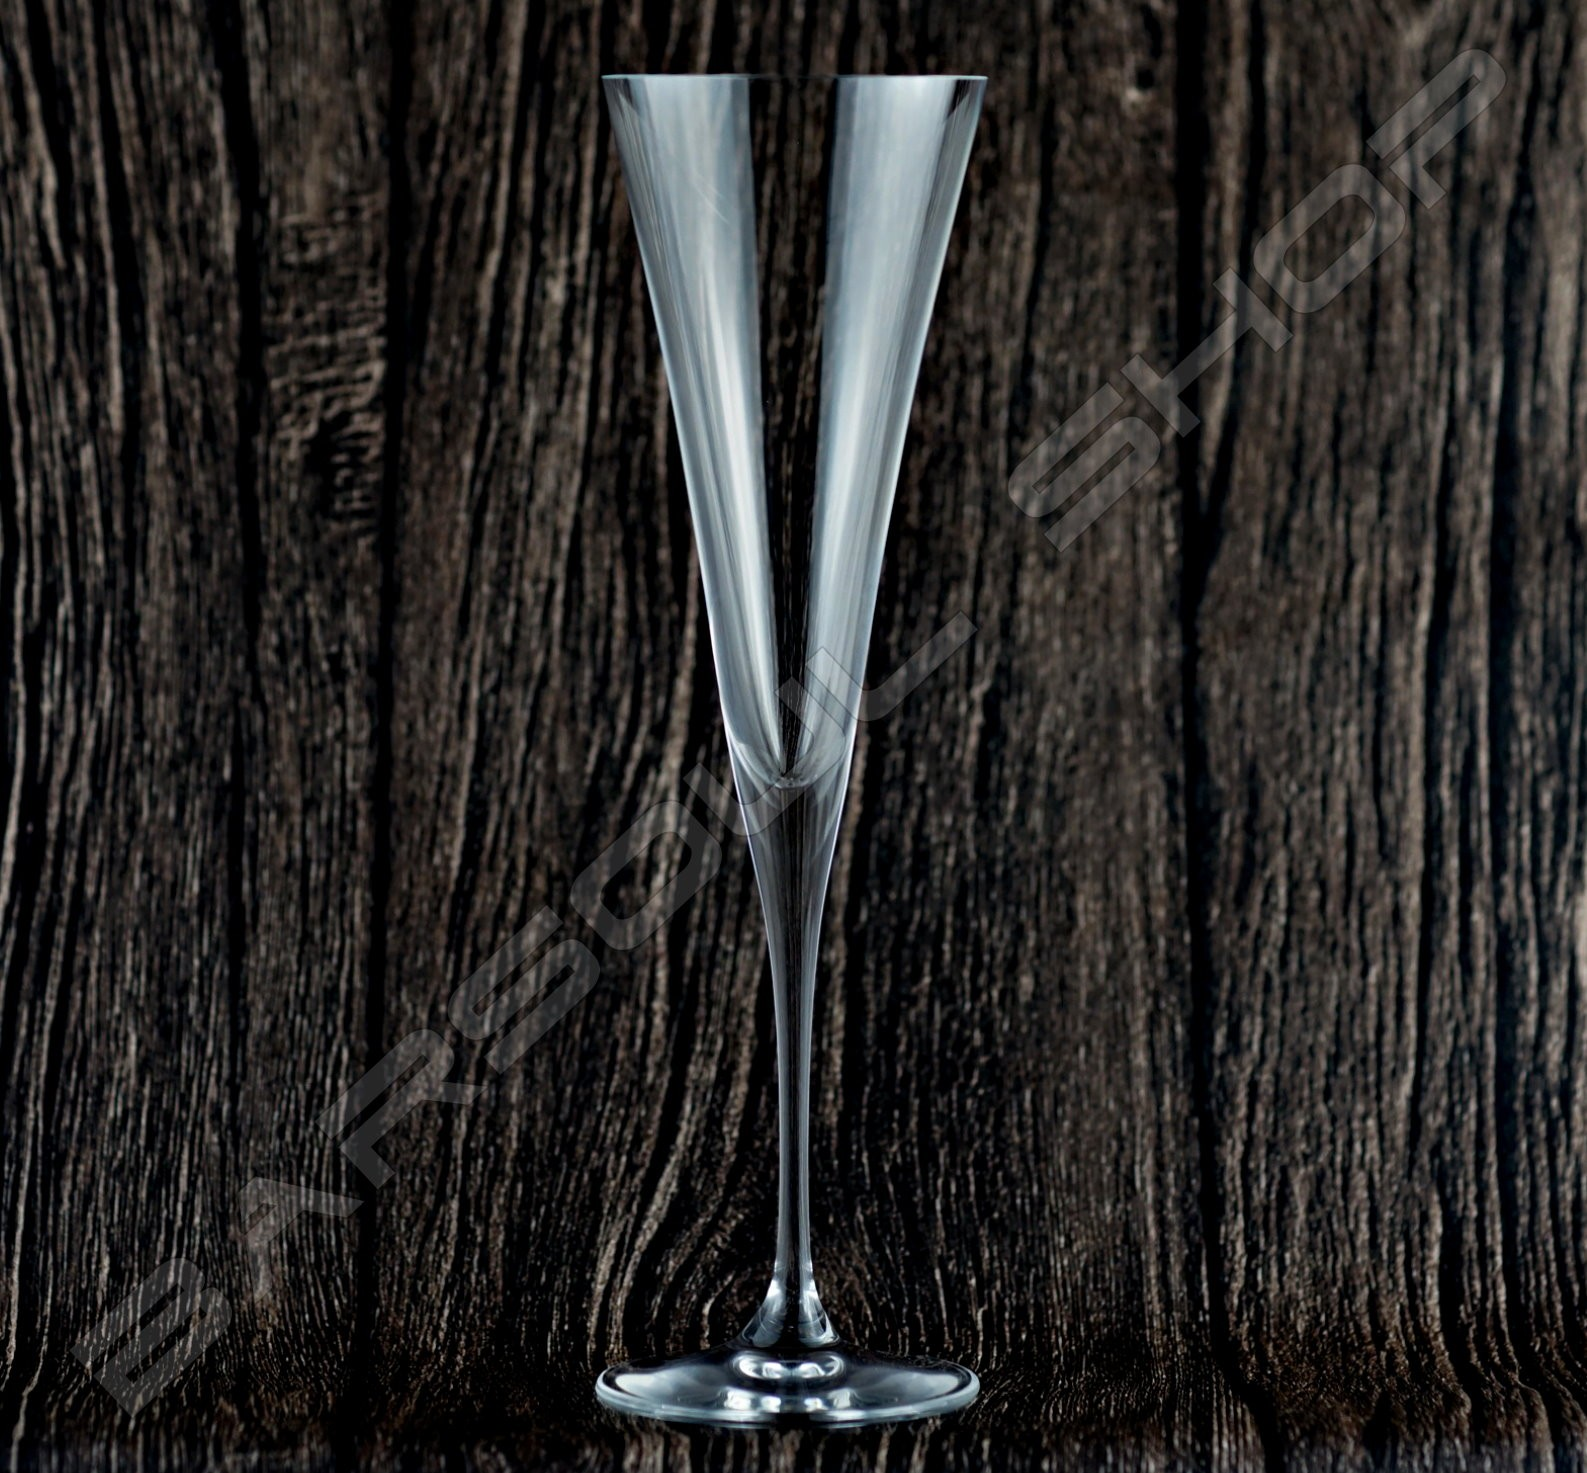 德國錐形香檳杯杯12 pcs Germany SPIEGELAU Taper Champagne Glass